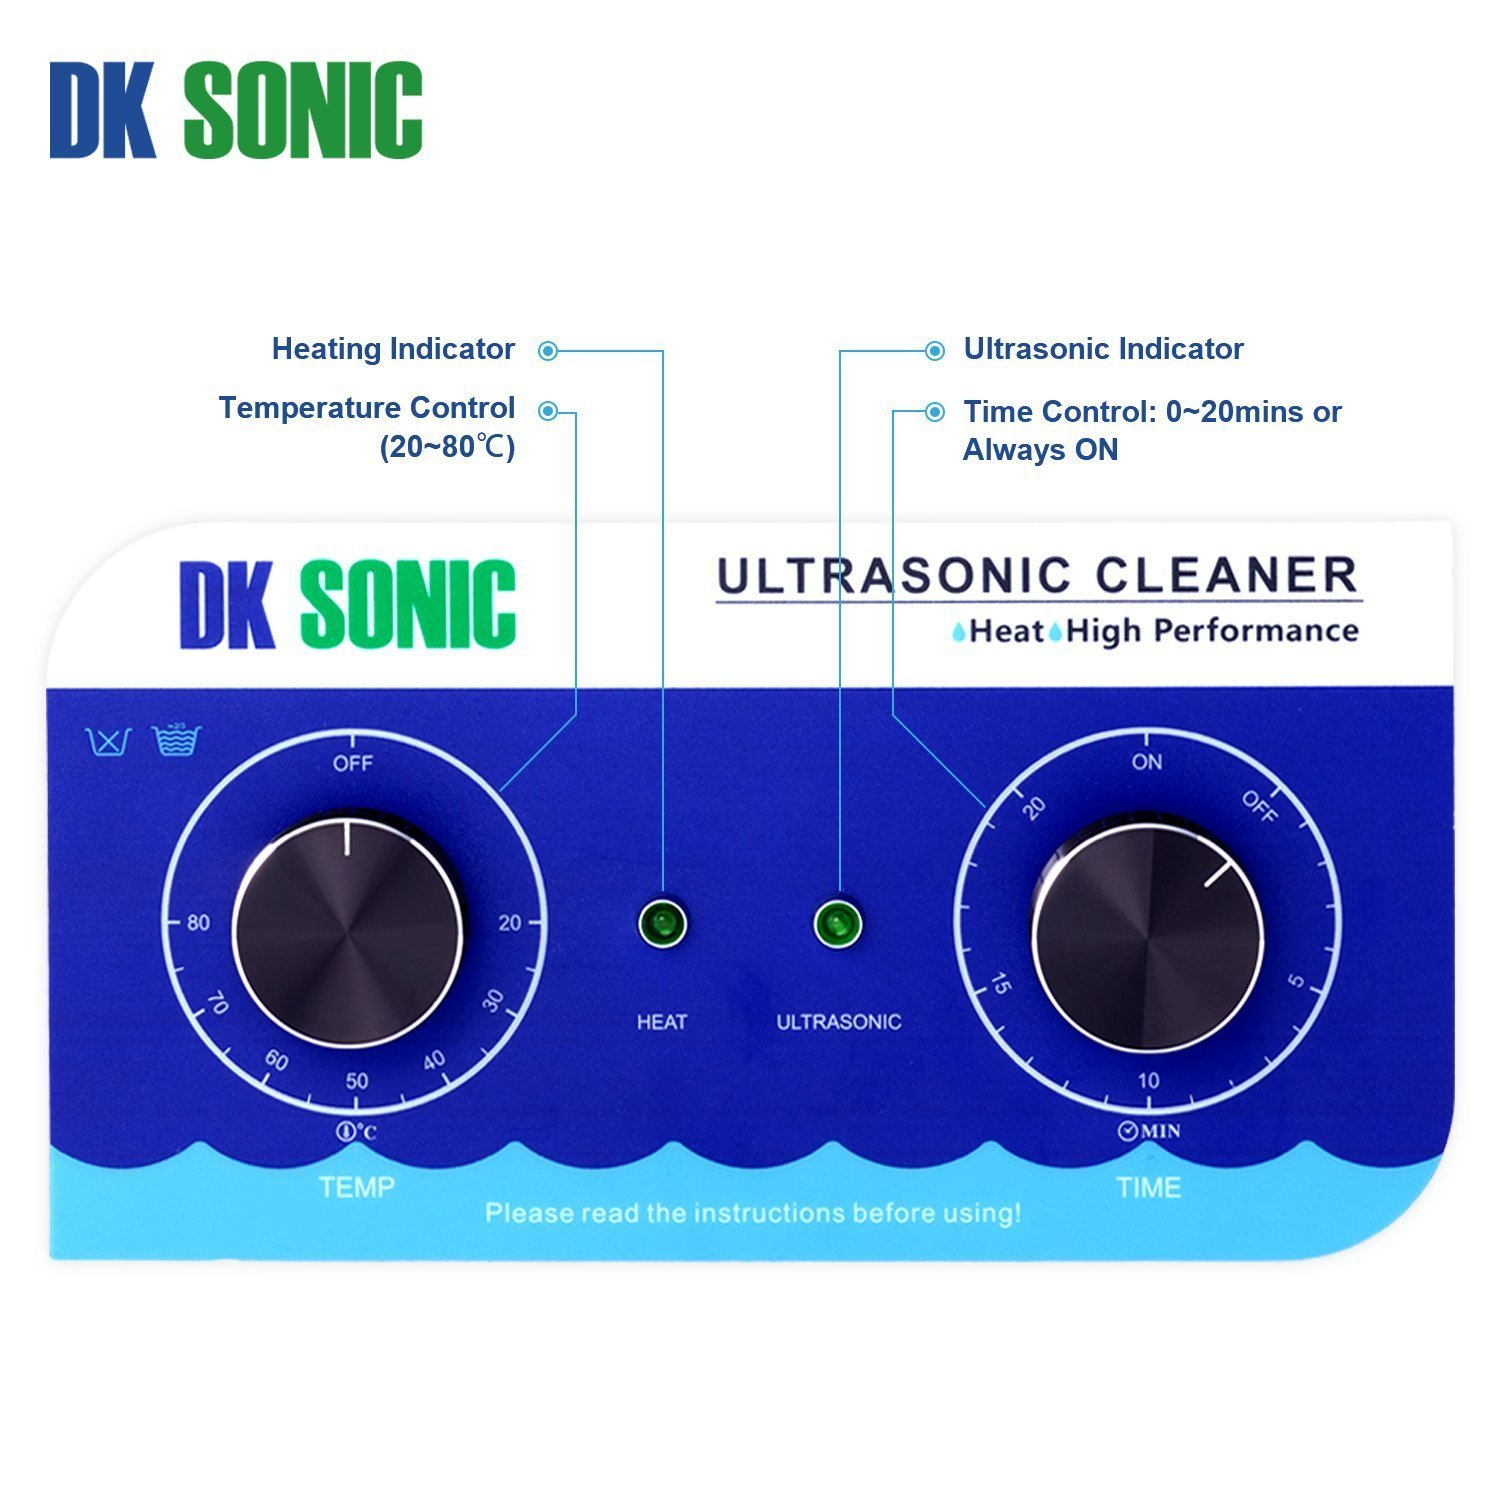 Commercial Ultrasonic Gun Cleaner Heated - DK SONIC 3L 120W Ultrasonic Jewelry Cleaner with Heater Basket for Parts Denture Carburetor Eyeglass Fuel Injector Record Circuit Board Dental 40KHz by DK SONIC (Image #5)